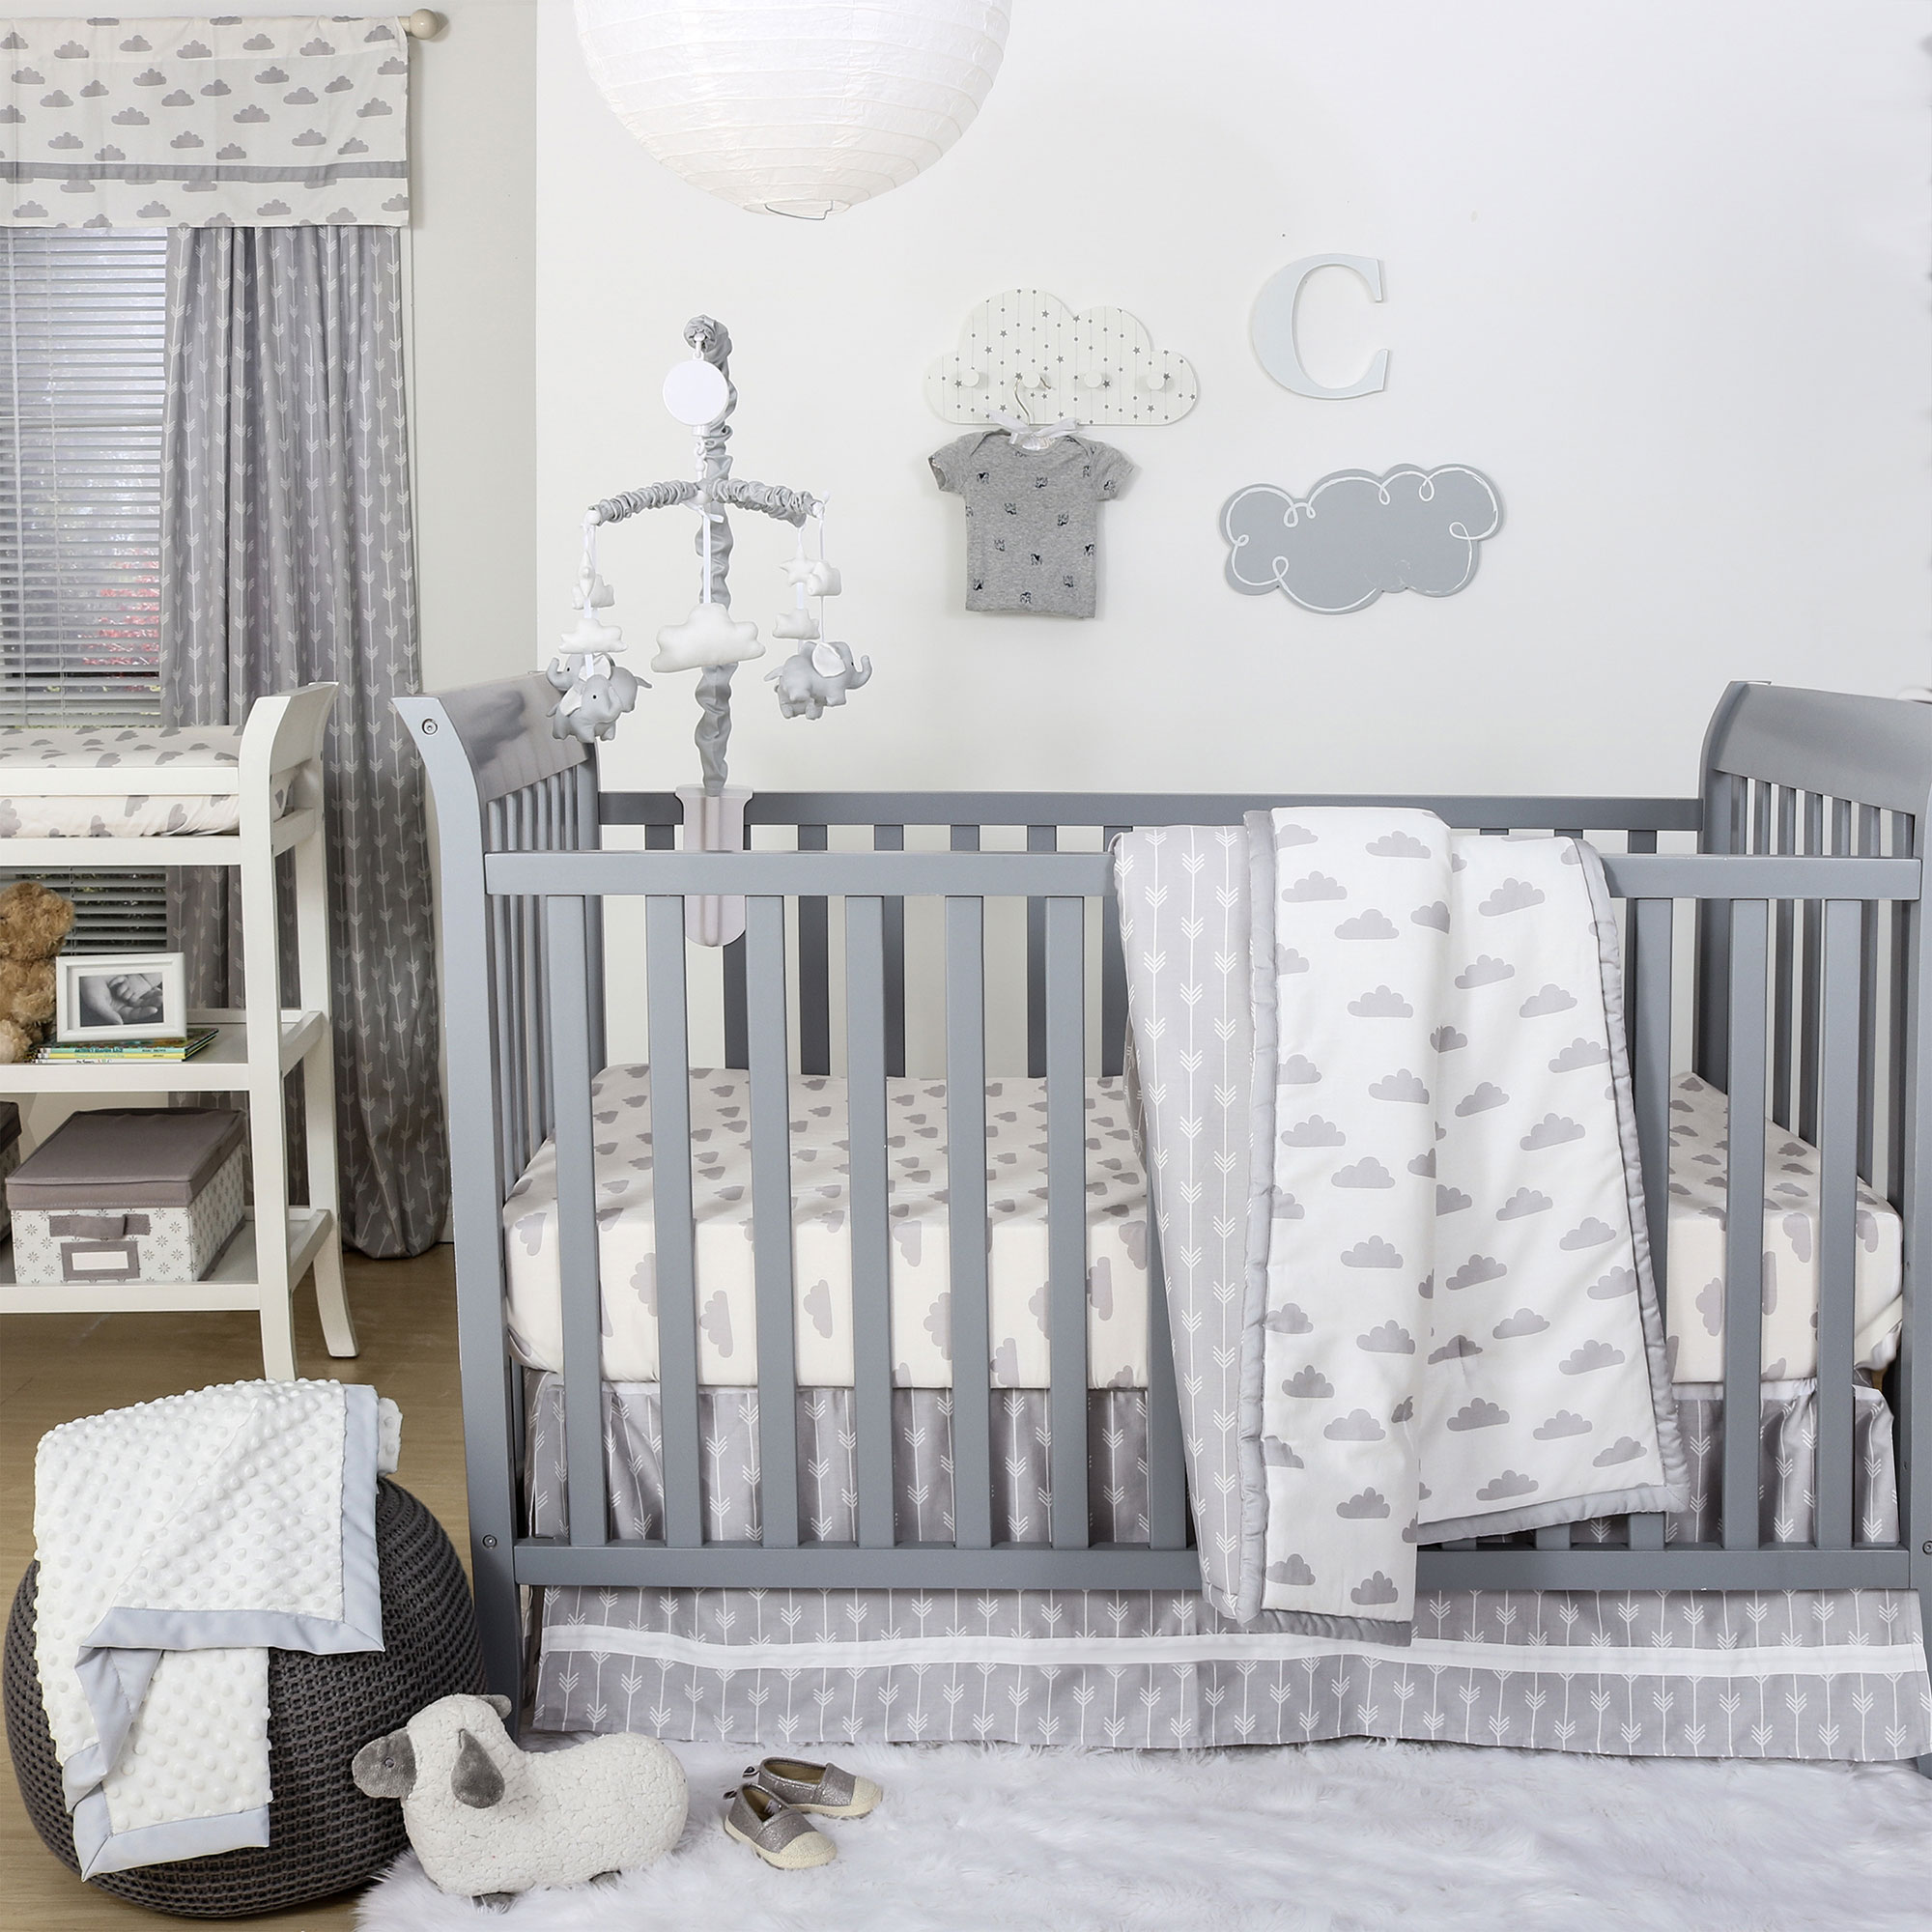 The Peanut Shell 4 Piece Baby Crib Bedding Set - Grey Clouds and Arrow Chevron Print - 100% Cotton Quilt, Dust Ruffle, Fitted Sheet, and Mobile